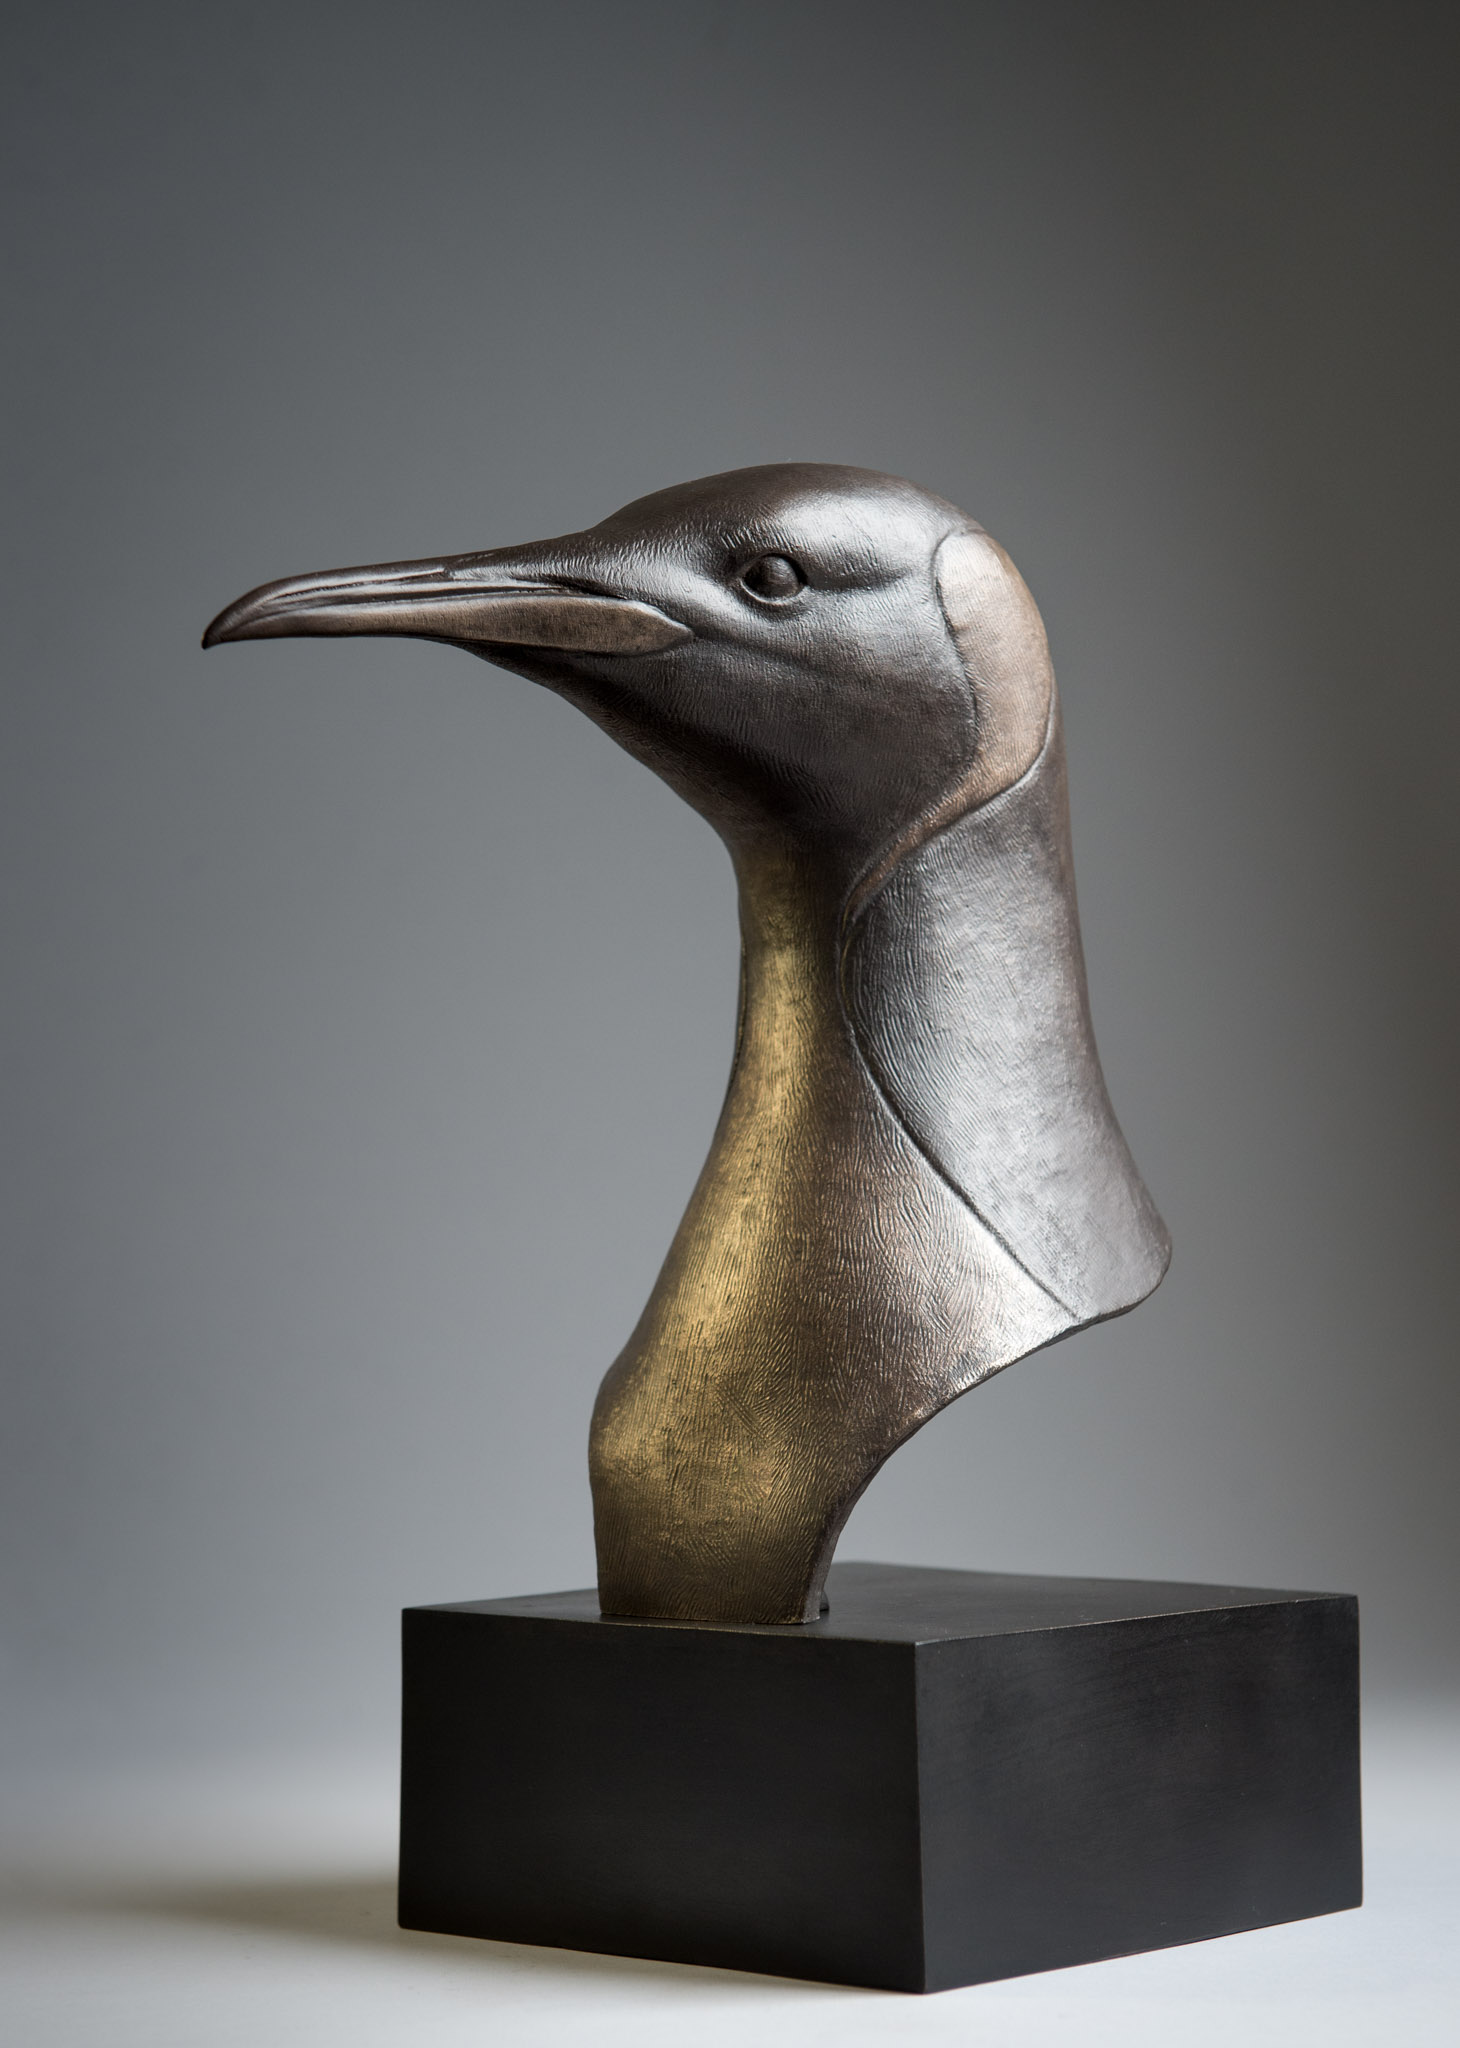 Bronze sculpture of a King Penguin head by artist Anthony Smith